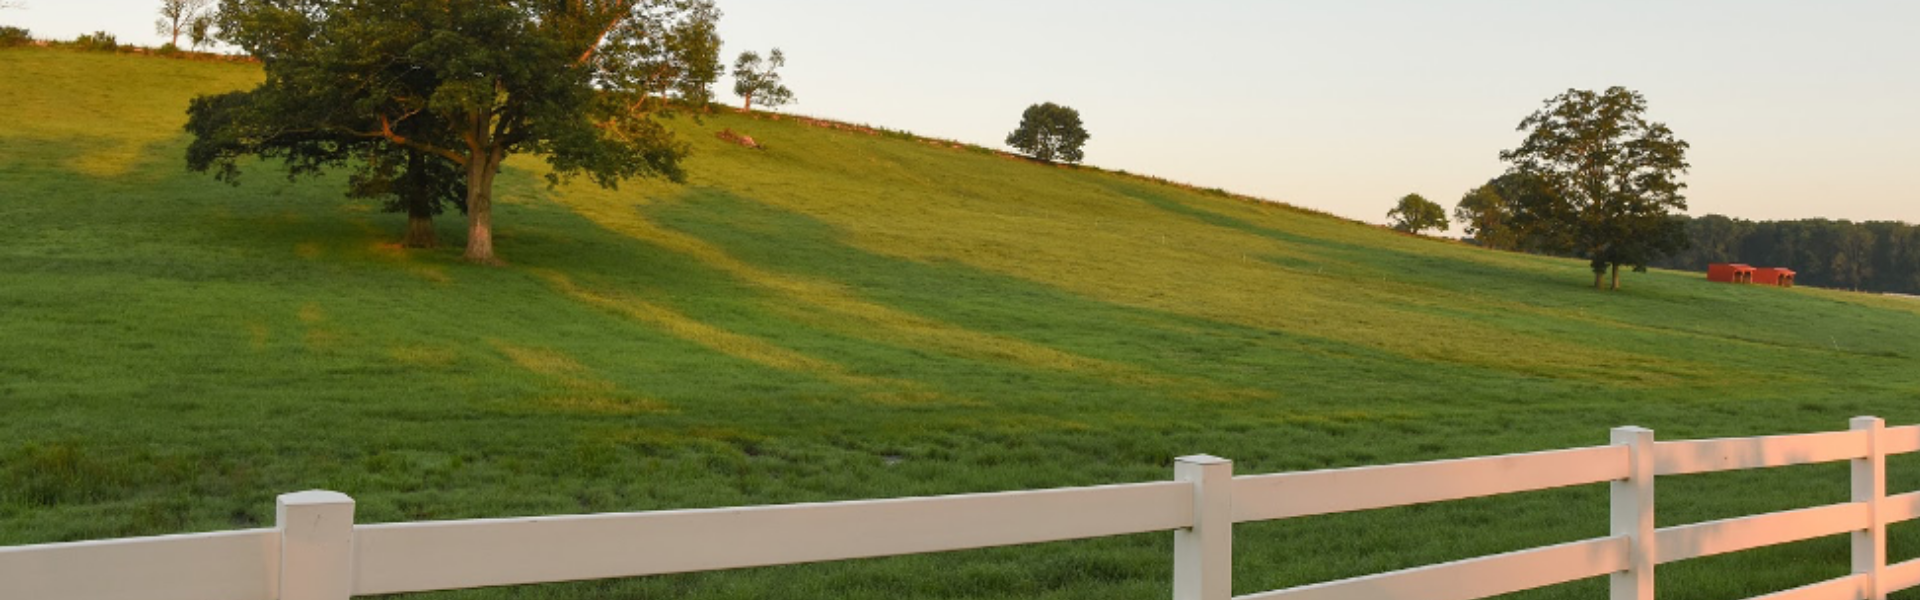 Horsebarn Hill at the University of Connecticut, a white fence surrounding a large, grassy hill